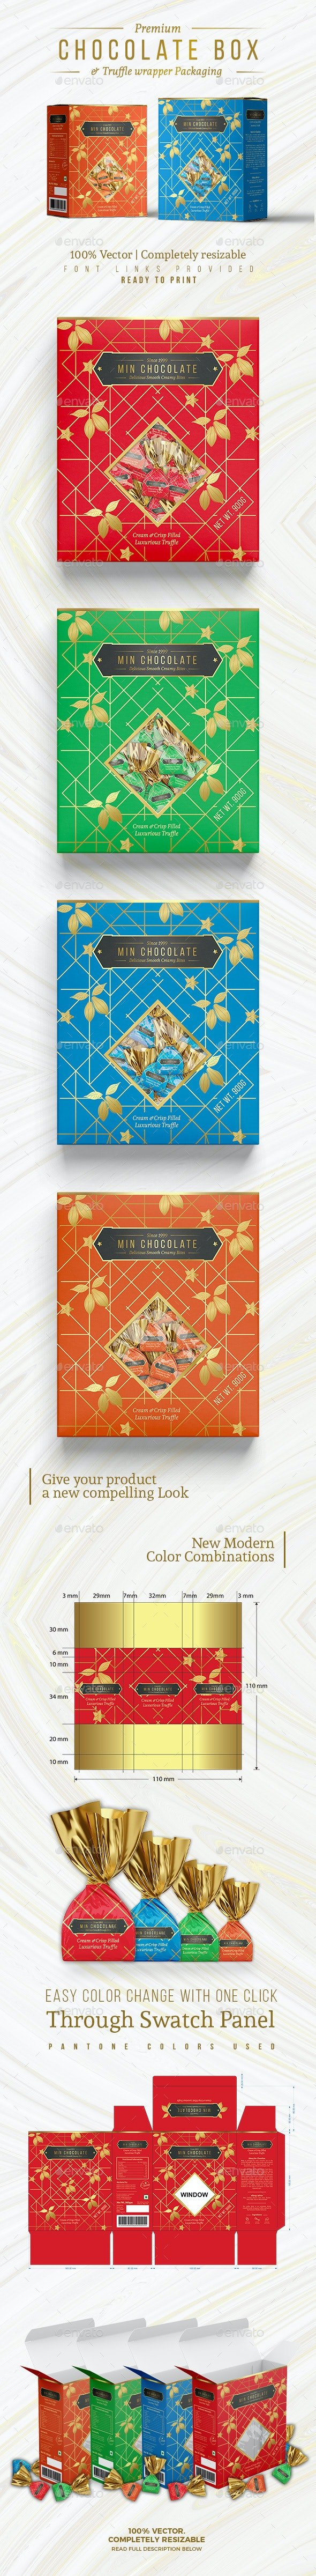 Chocolate Box and Truffle Wrapper Packaging - Packaging Print Templates